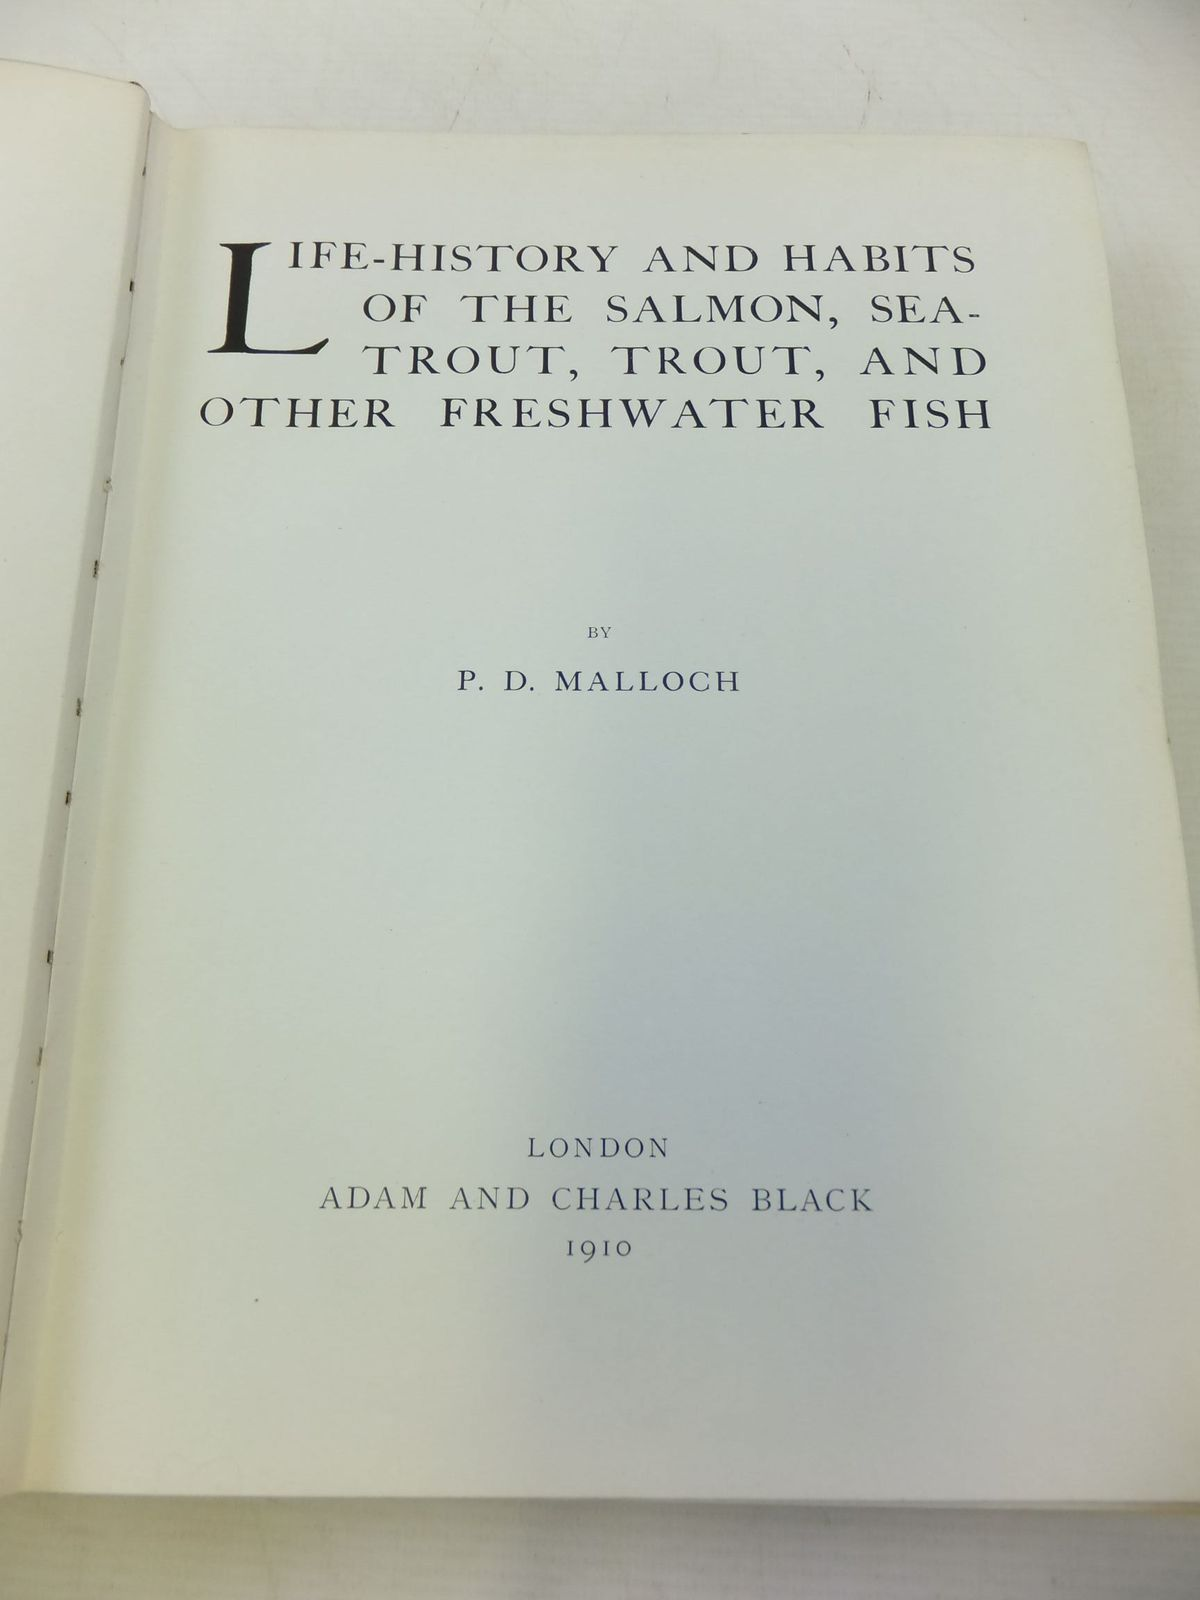 Photo of LIFE HISTORY AND HABITS OF THE SALMON, SEA-TROUT, TROUT AND OTHER FRESHWATER FISH written by Malloch, P.D. published by Adam & Charles Black (STOCK CODE: 2112420)  for sale by Stella & Rose's Books